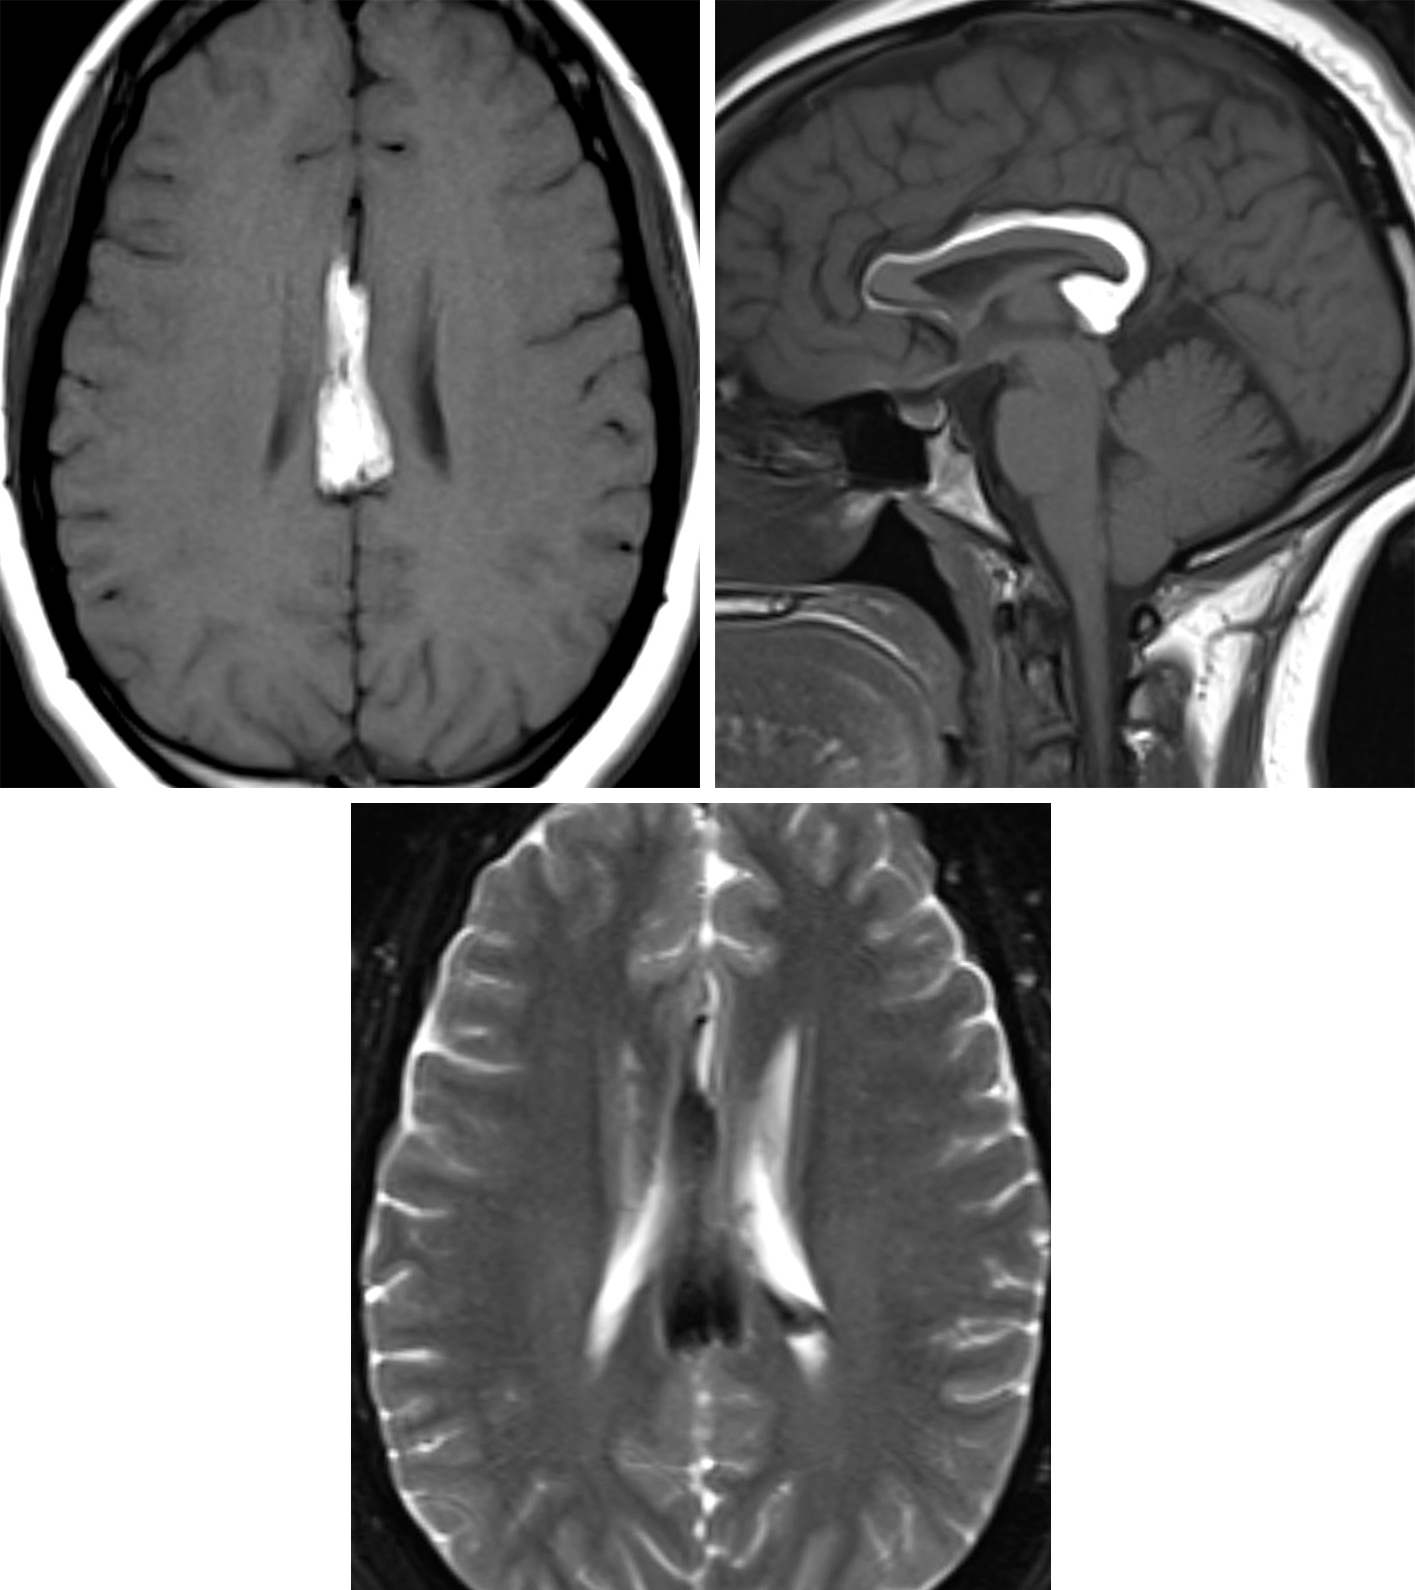 Figure 2: Axial (top left) and sagittal (top right) T1-weighted images demonstrate an intrinsically T1 hyperintense pericallosal mass that is suppressed on T2-weighted fat-saturation imaging (bottom). The appearance and location are classic for intracranial lipoma, resulting from a developmental failure of the meninx primitiva to involute.